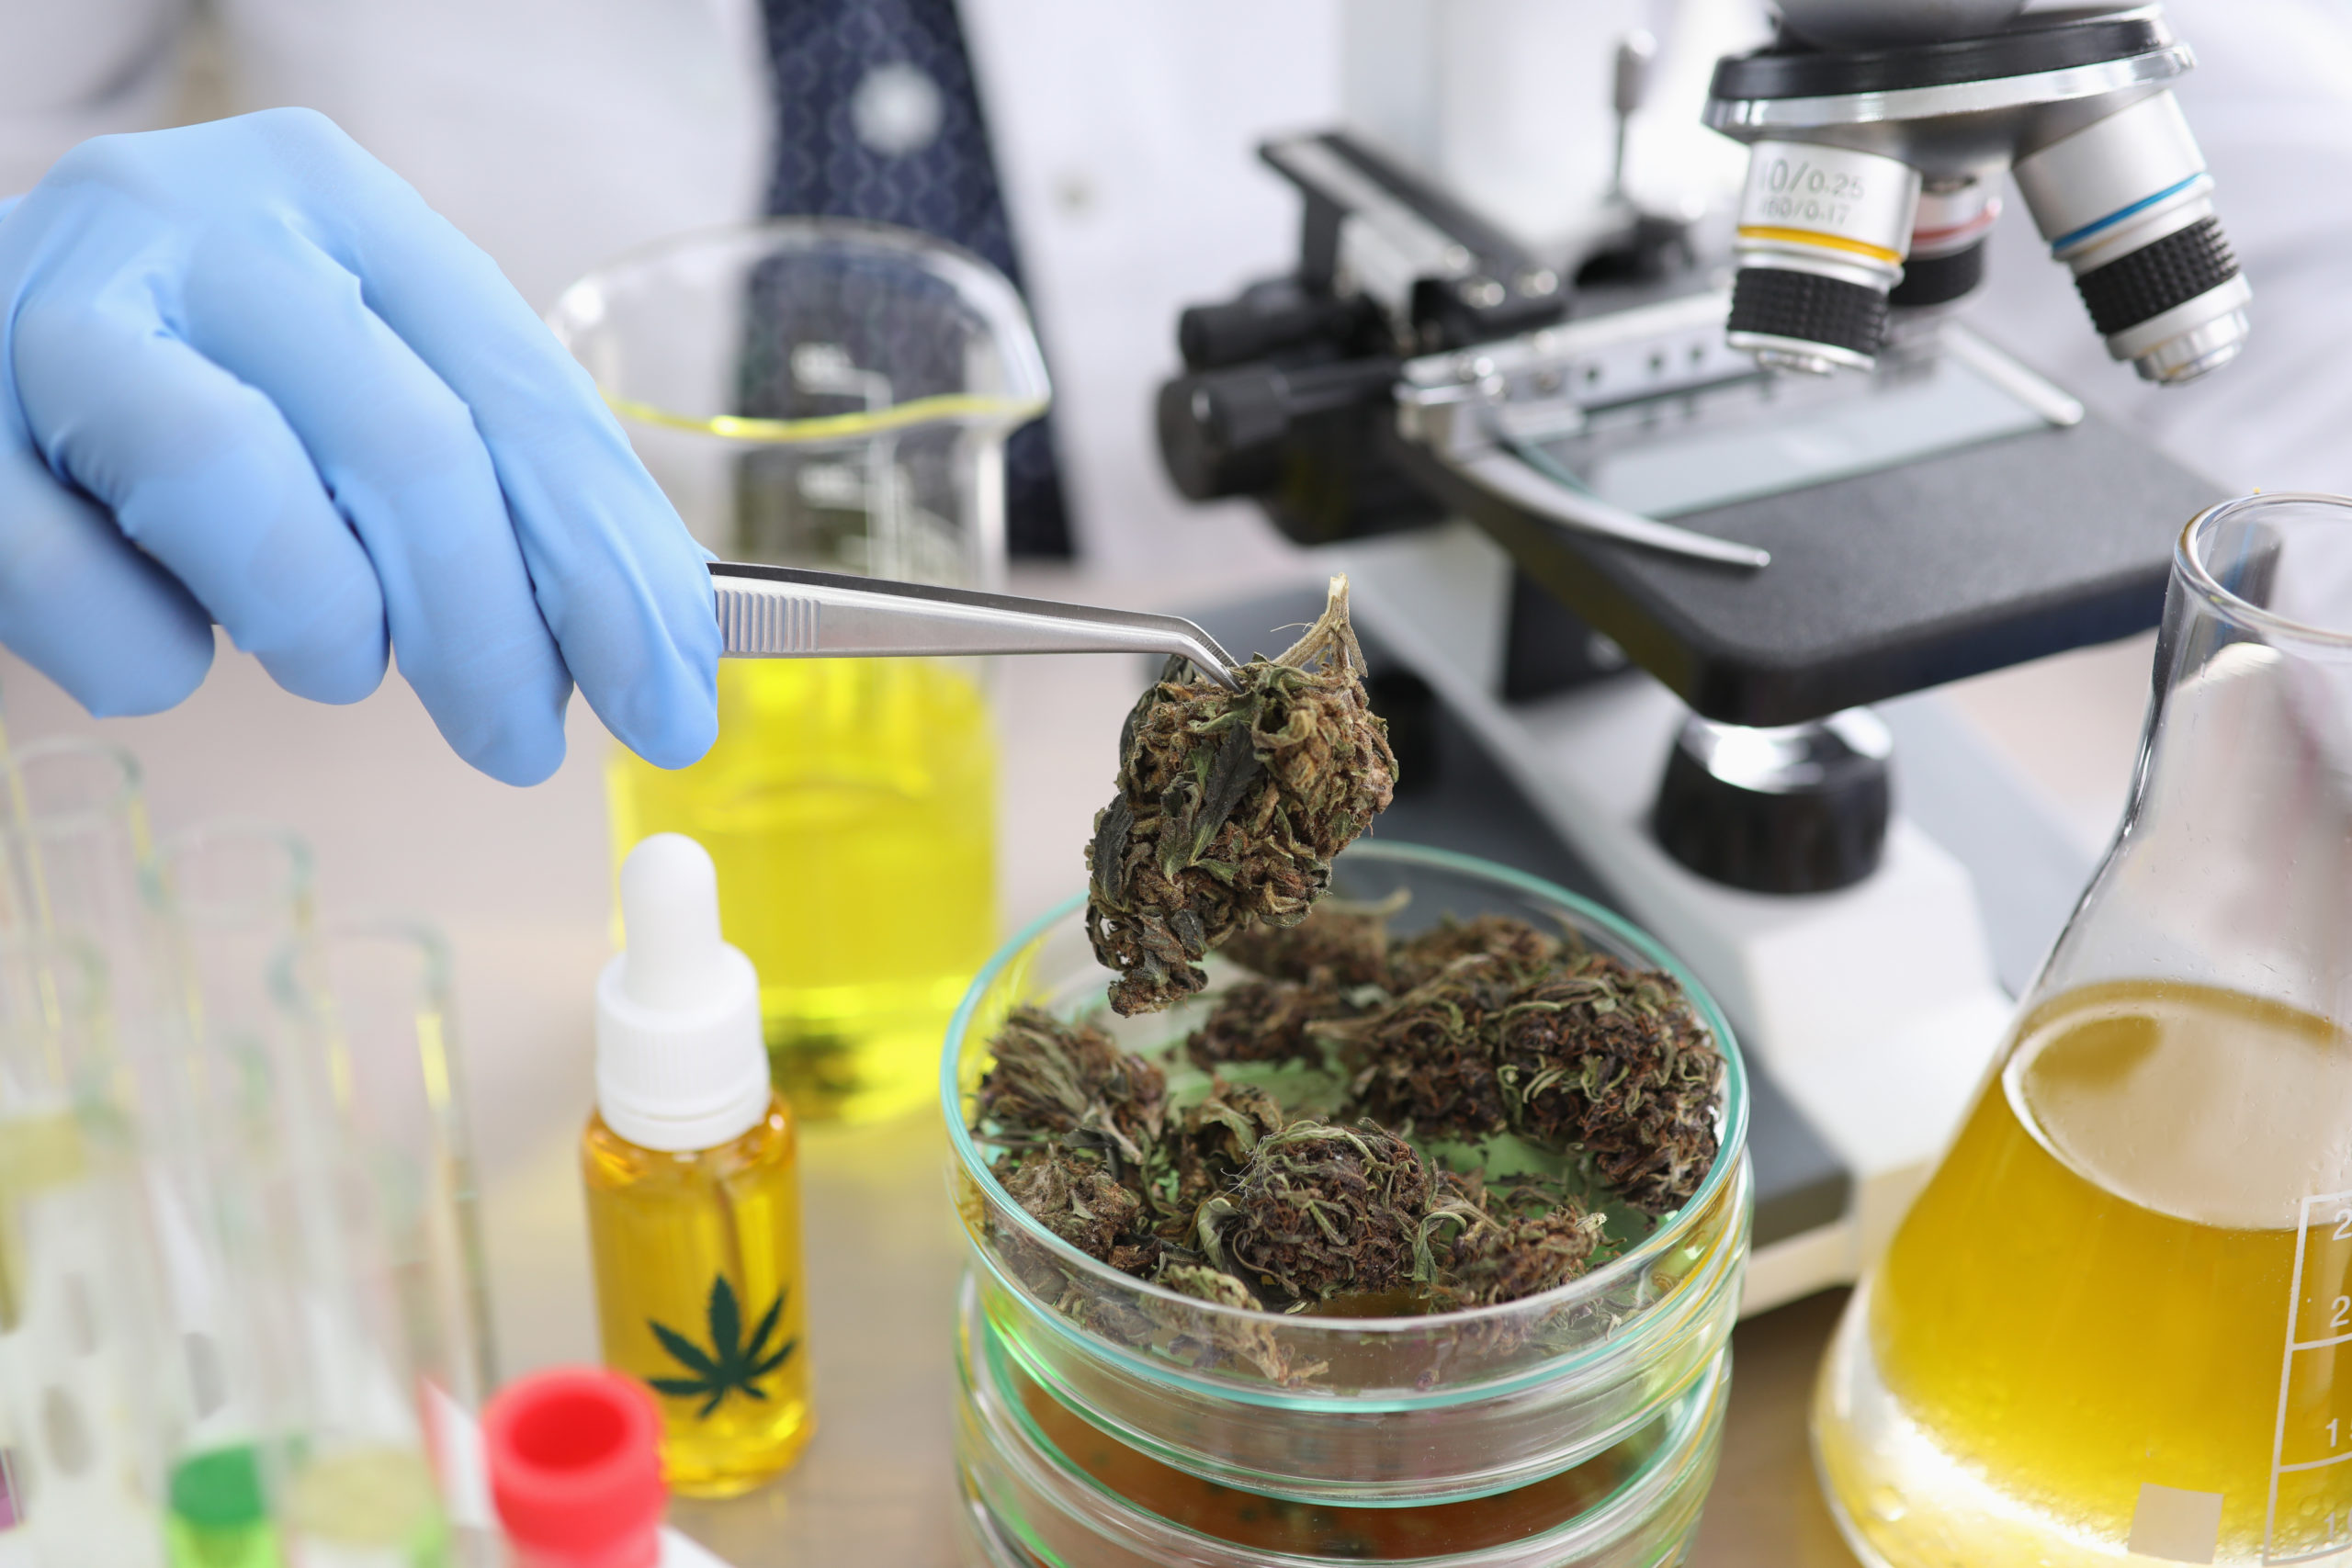 medical marijuana platform offering scholarships cannabis research featured scaled - Medical Marijuana Platform Offering Scholarships For Cannabis Research